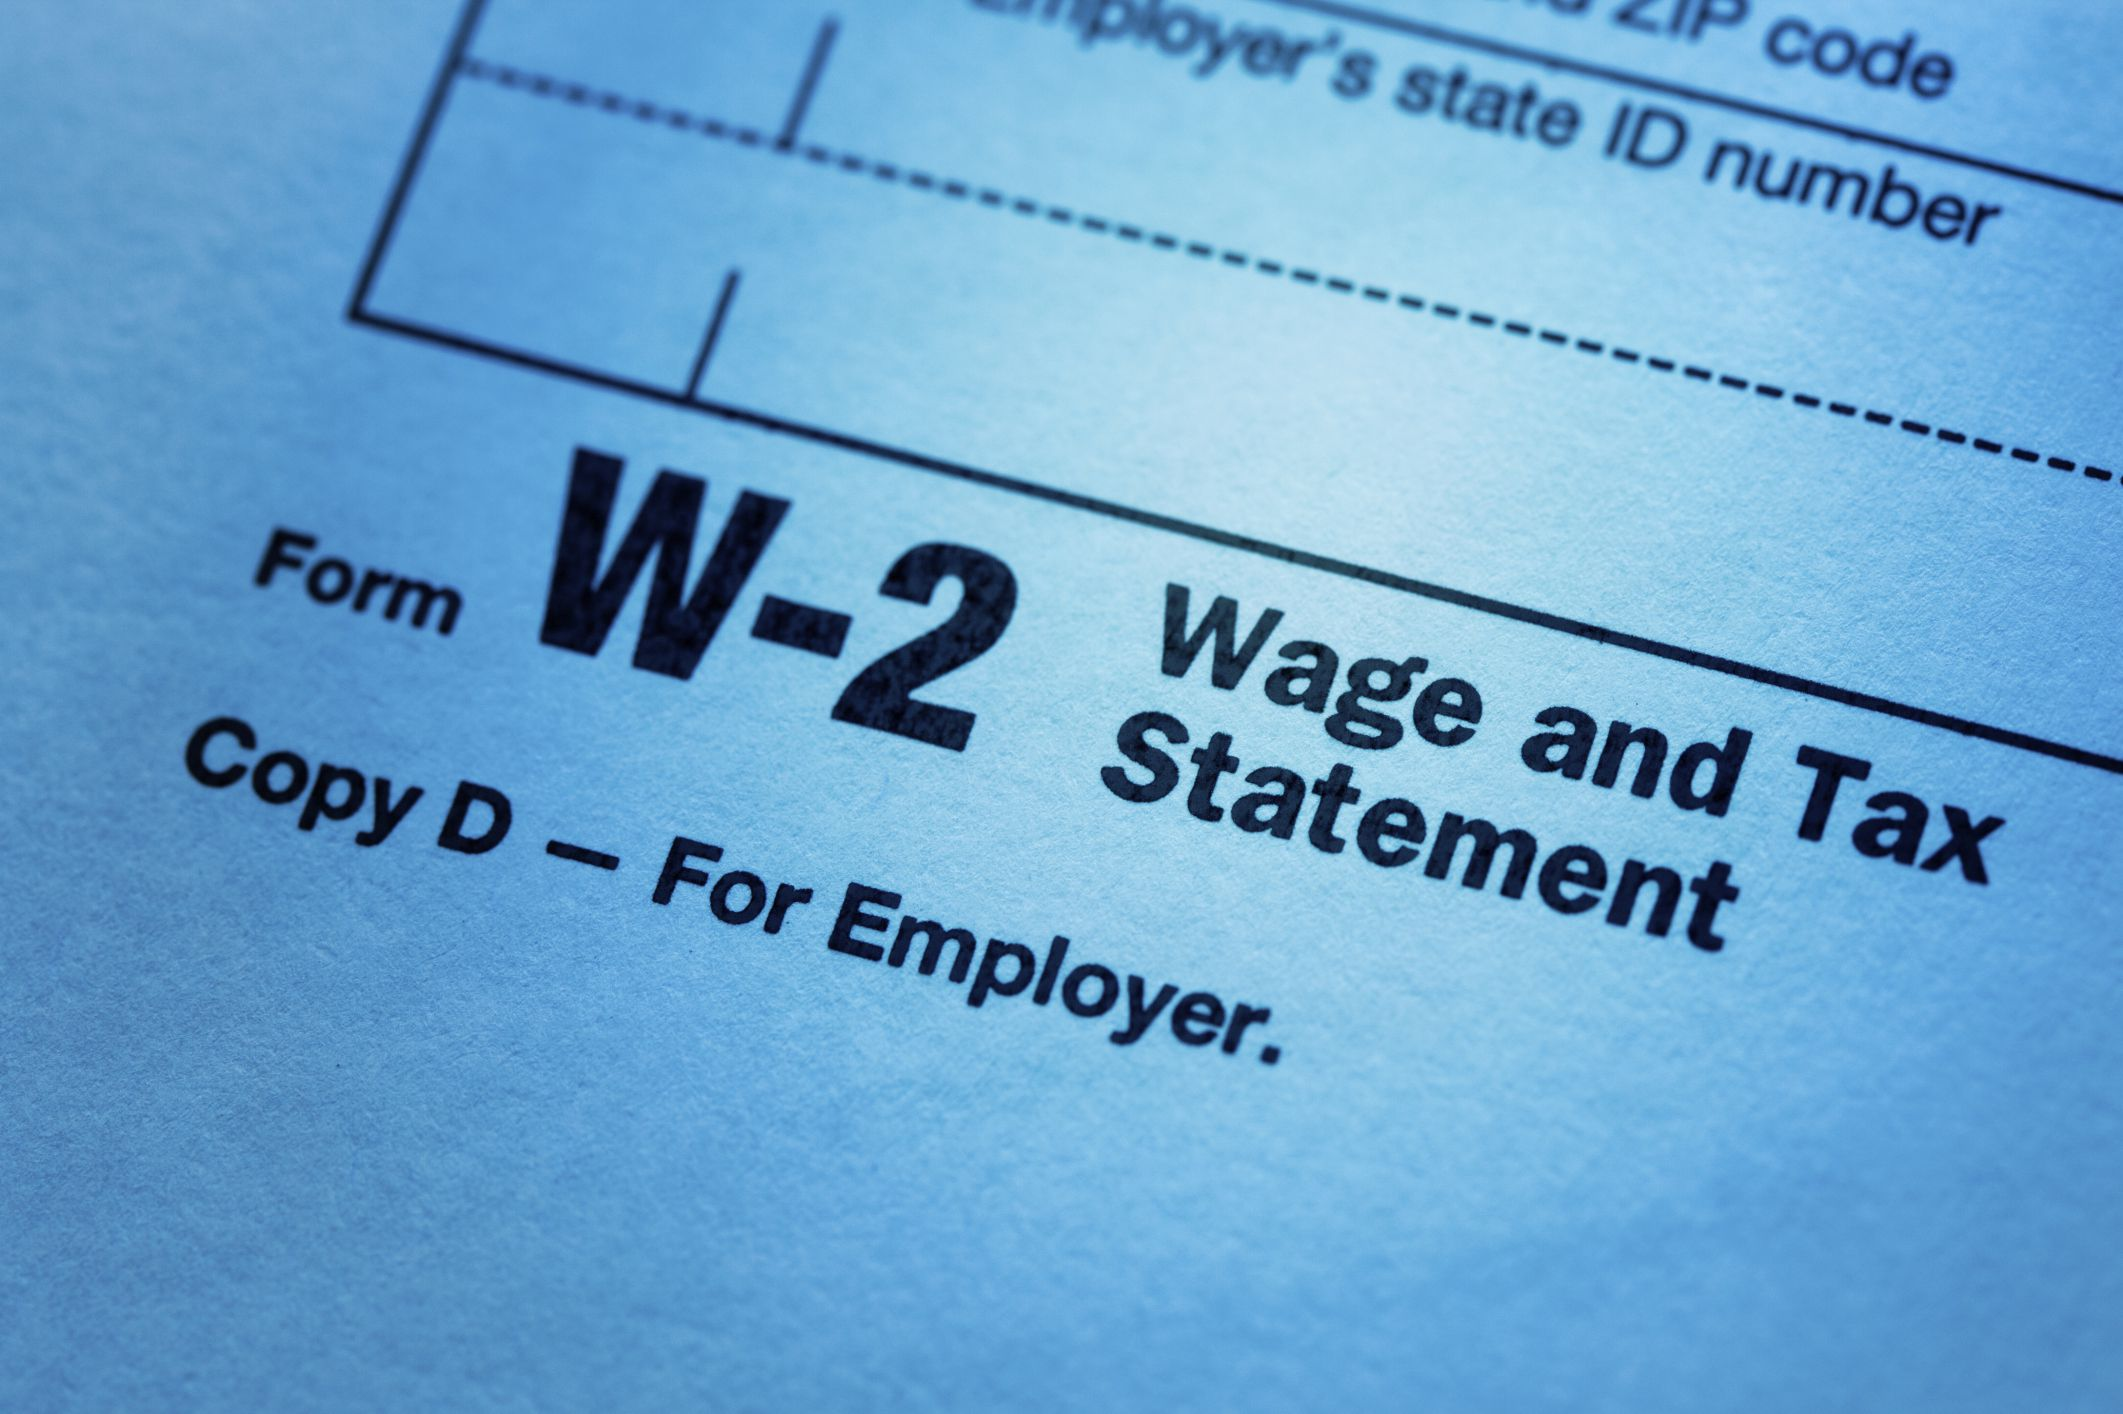 How and when to file form 941 for payroll taxes payments to employees and social security wages calculate tax ccuart Gallery